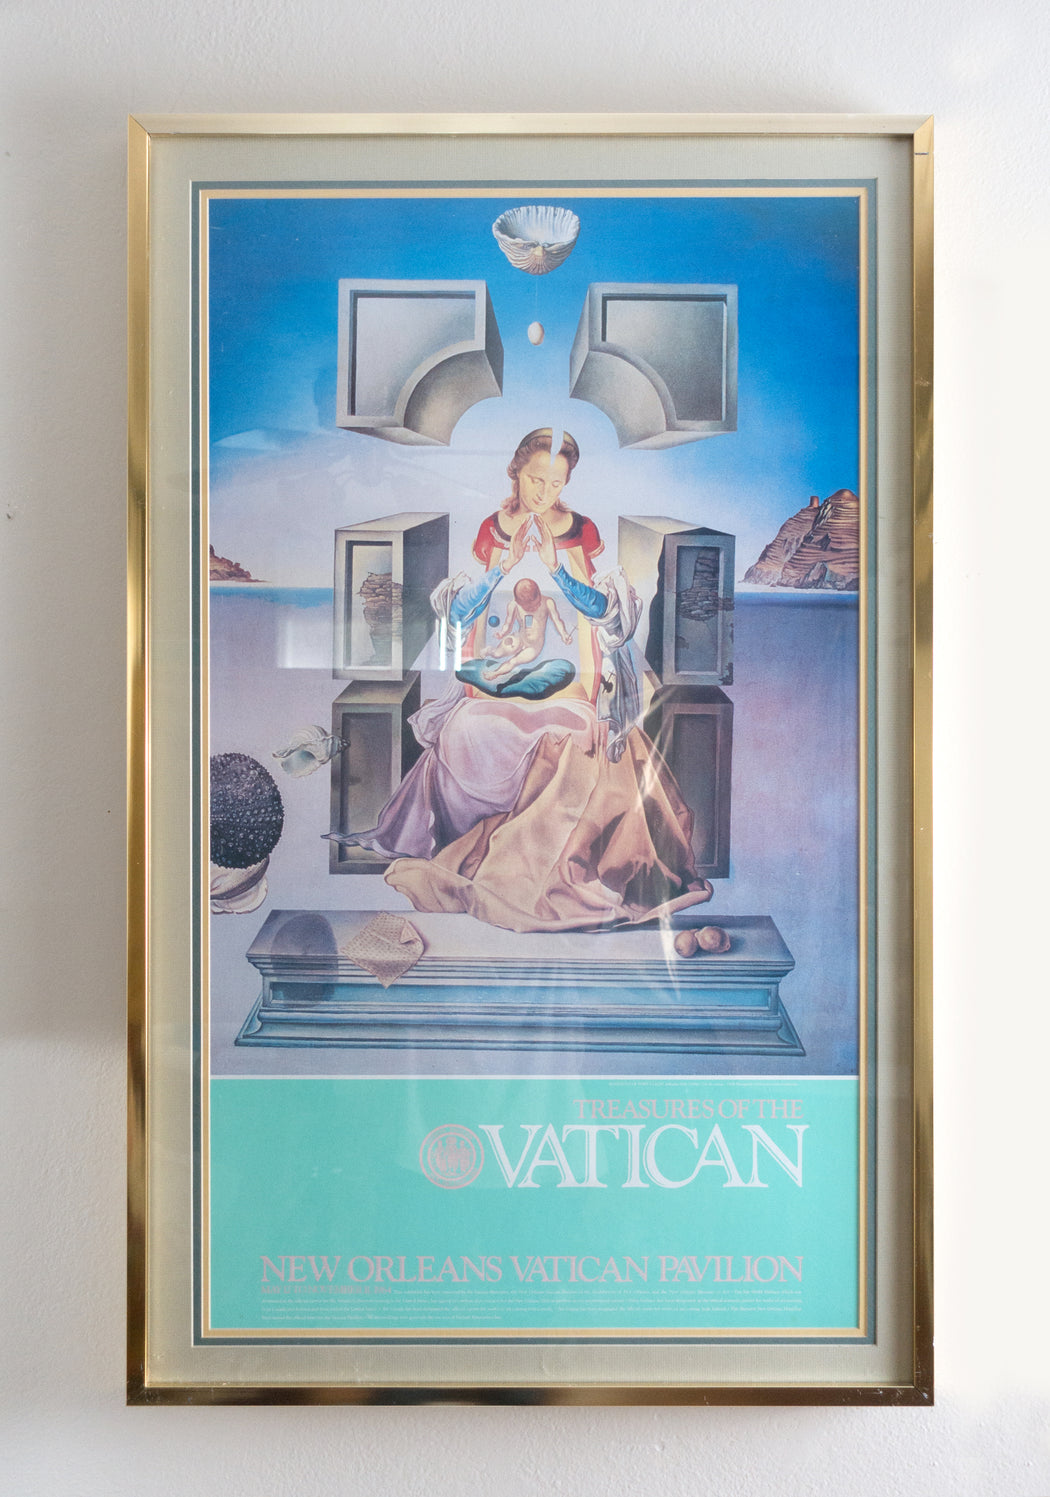 1984 Treasures of the Vatican New Orleans Exhibit Poster | Dali Madonna Framed Art